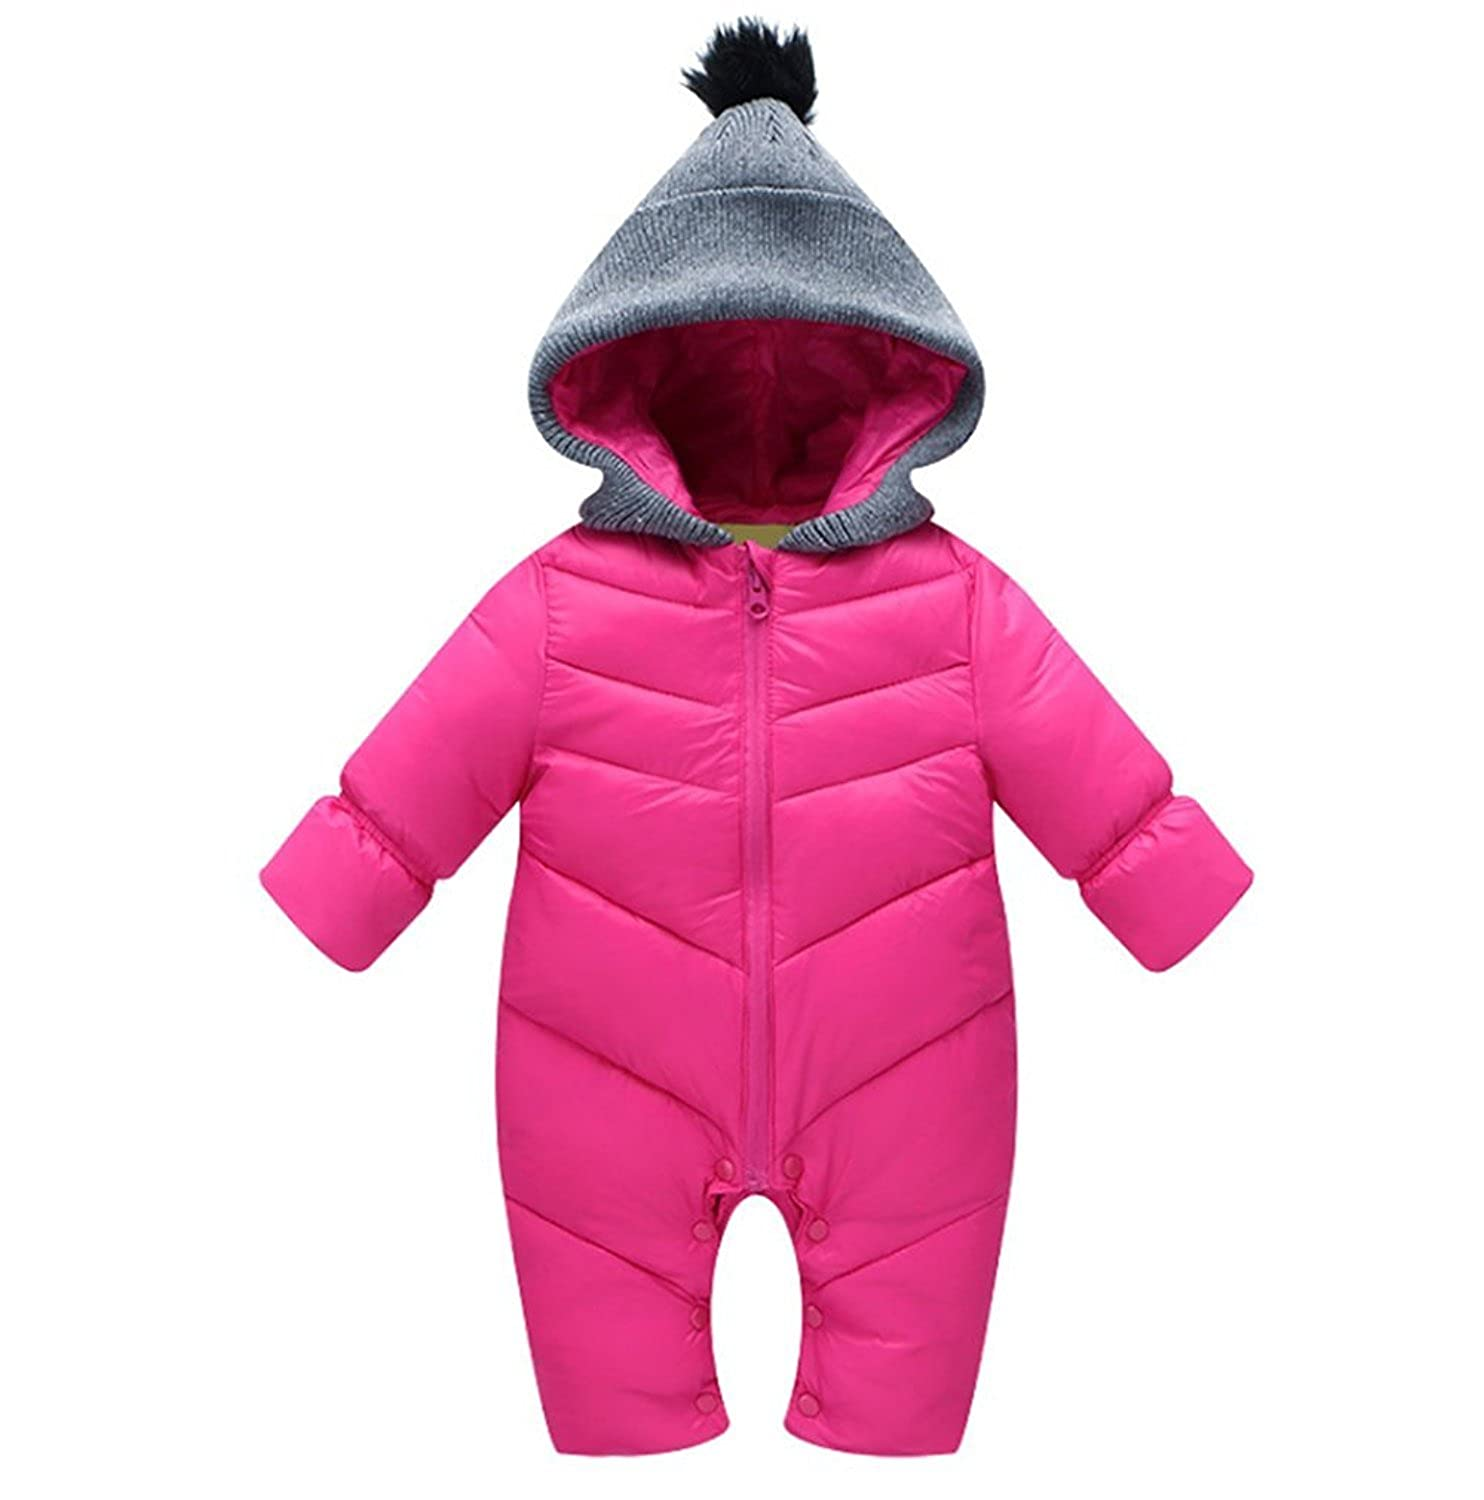 3822363a2c672 Amazon.com  Winter Baby Thick Warm Rompers Hooded Jumpsuit Unisex Children  Snowsuit Coat  Clothing